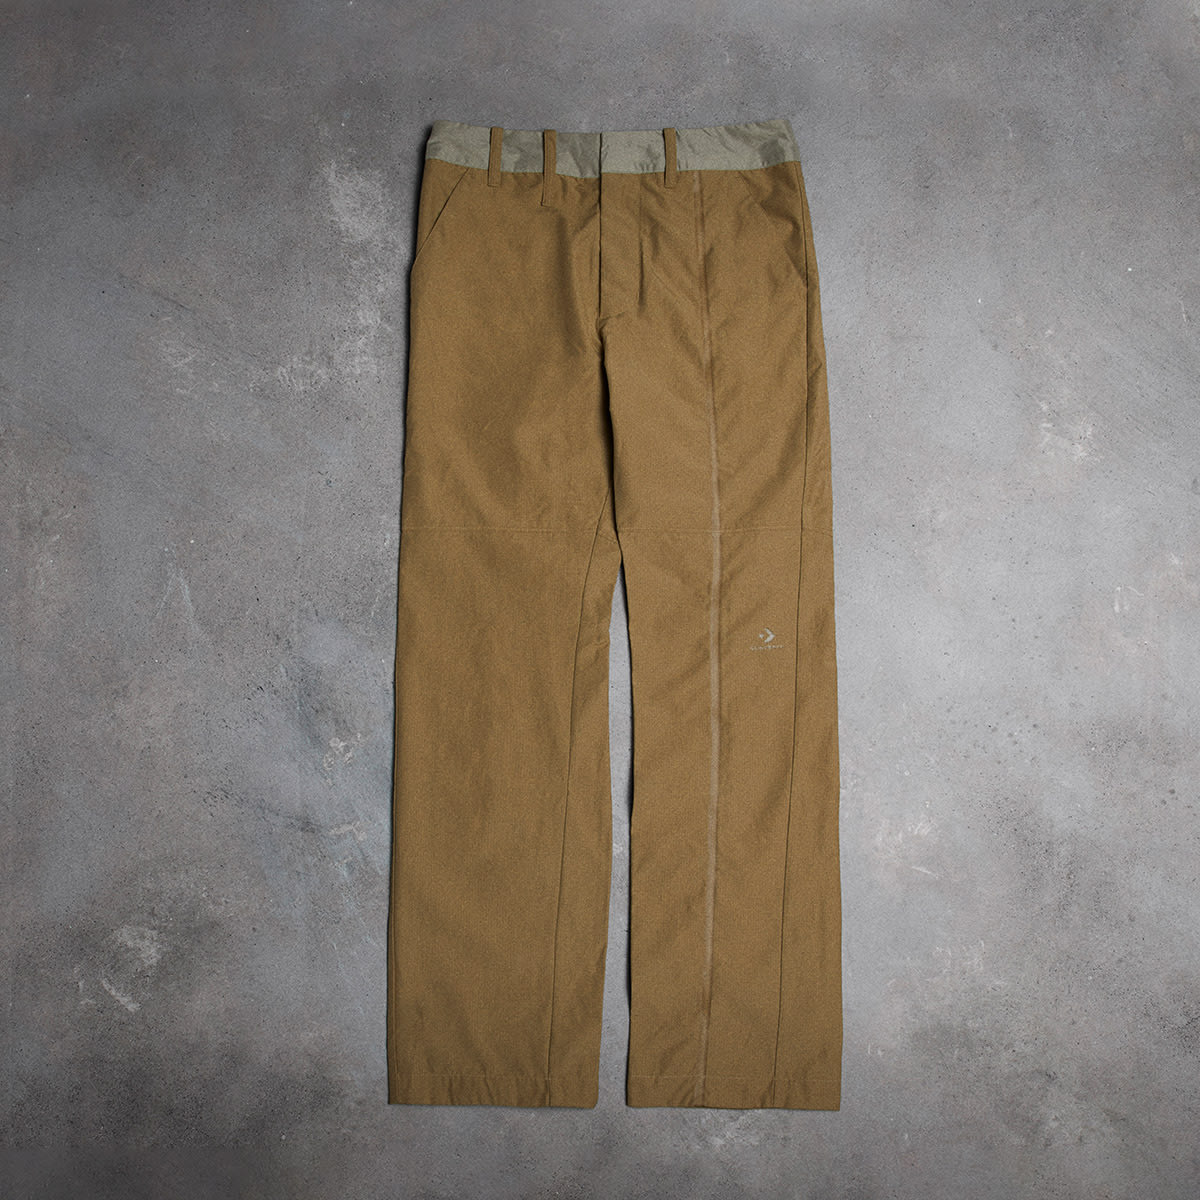 Converse x A-COLD-WALL* Track Pant - 10019369-216